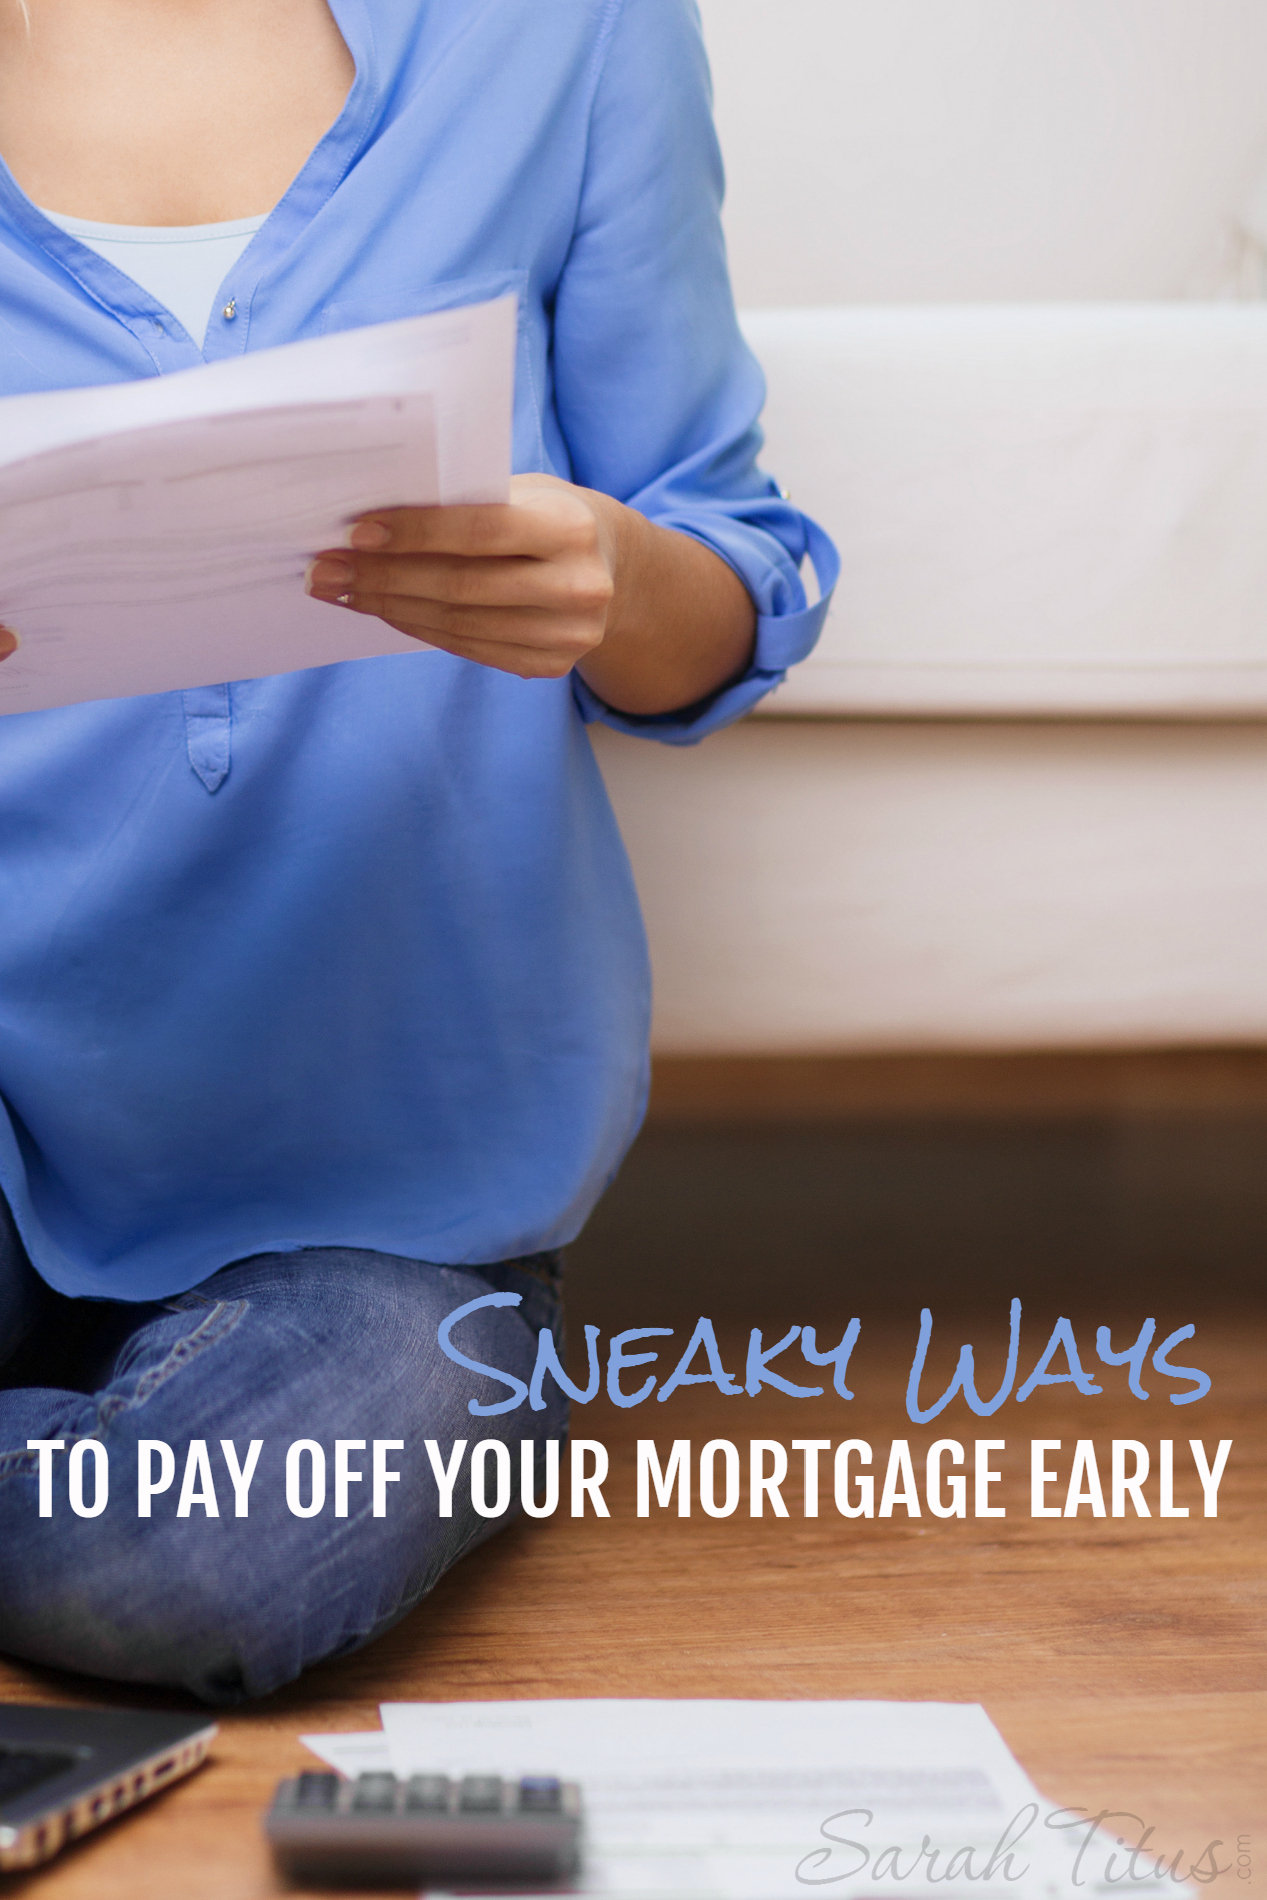 Sneaky Ways to Pay off your Mortgage Early